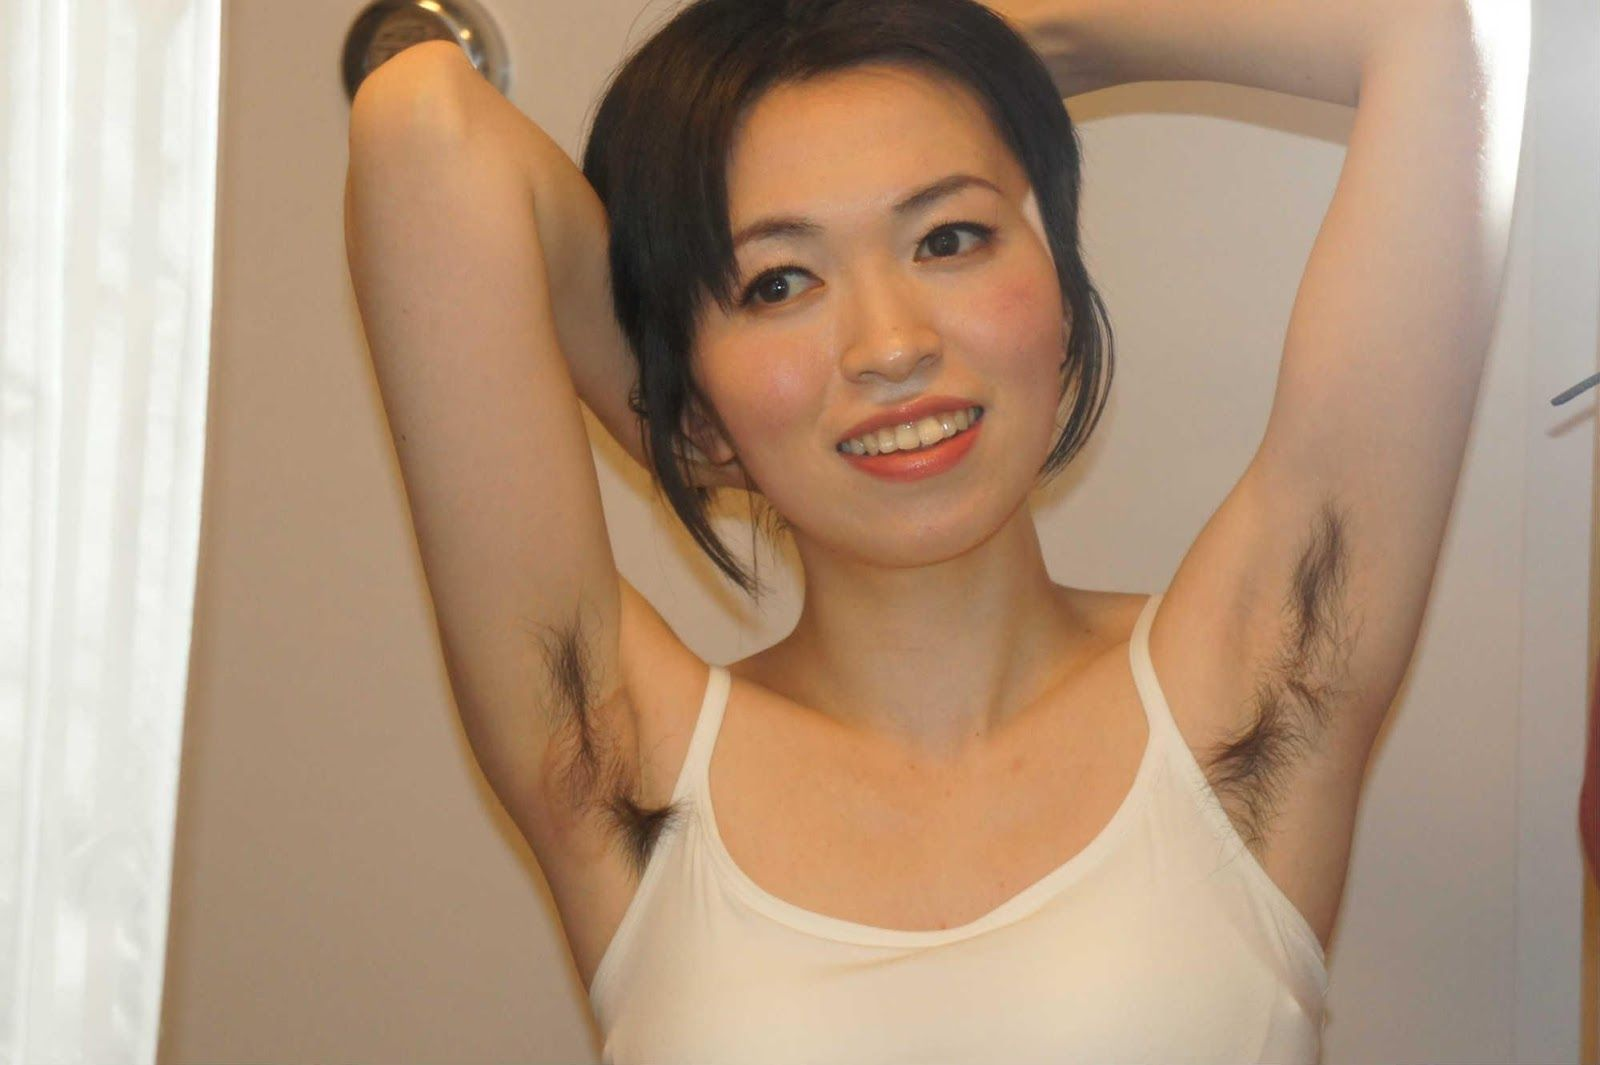 That result.. very hairy asian woman simply magnificent